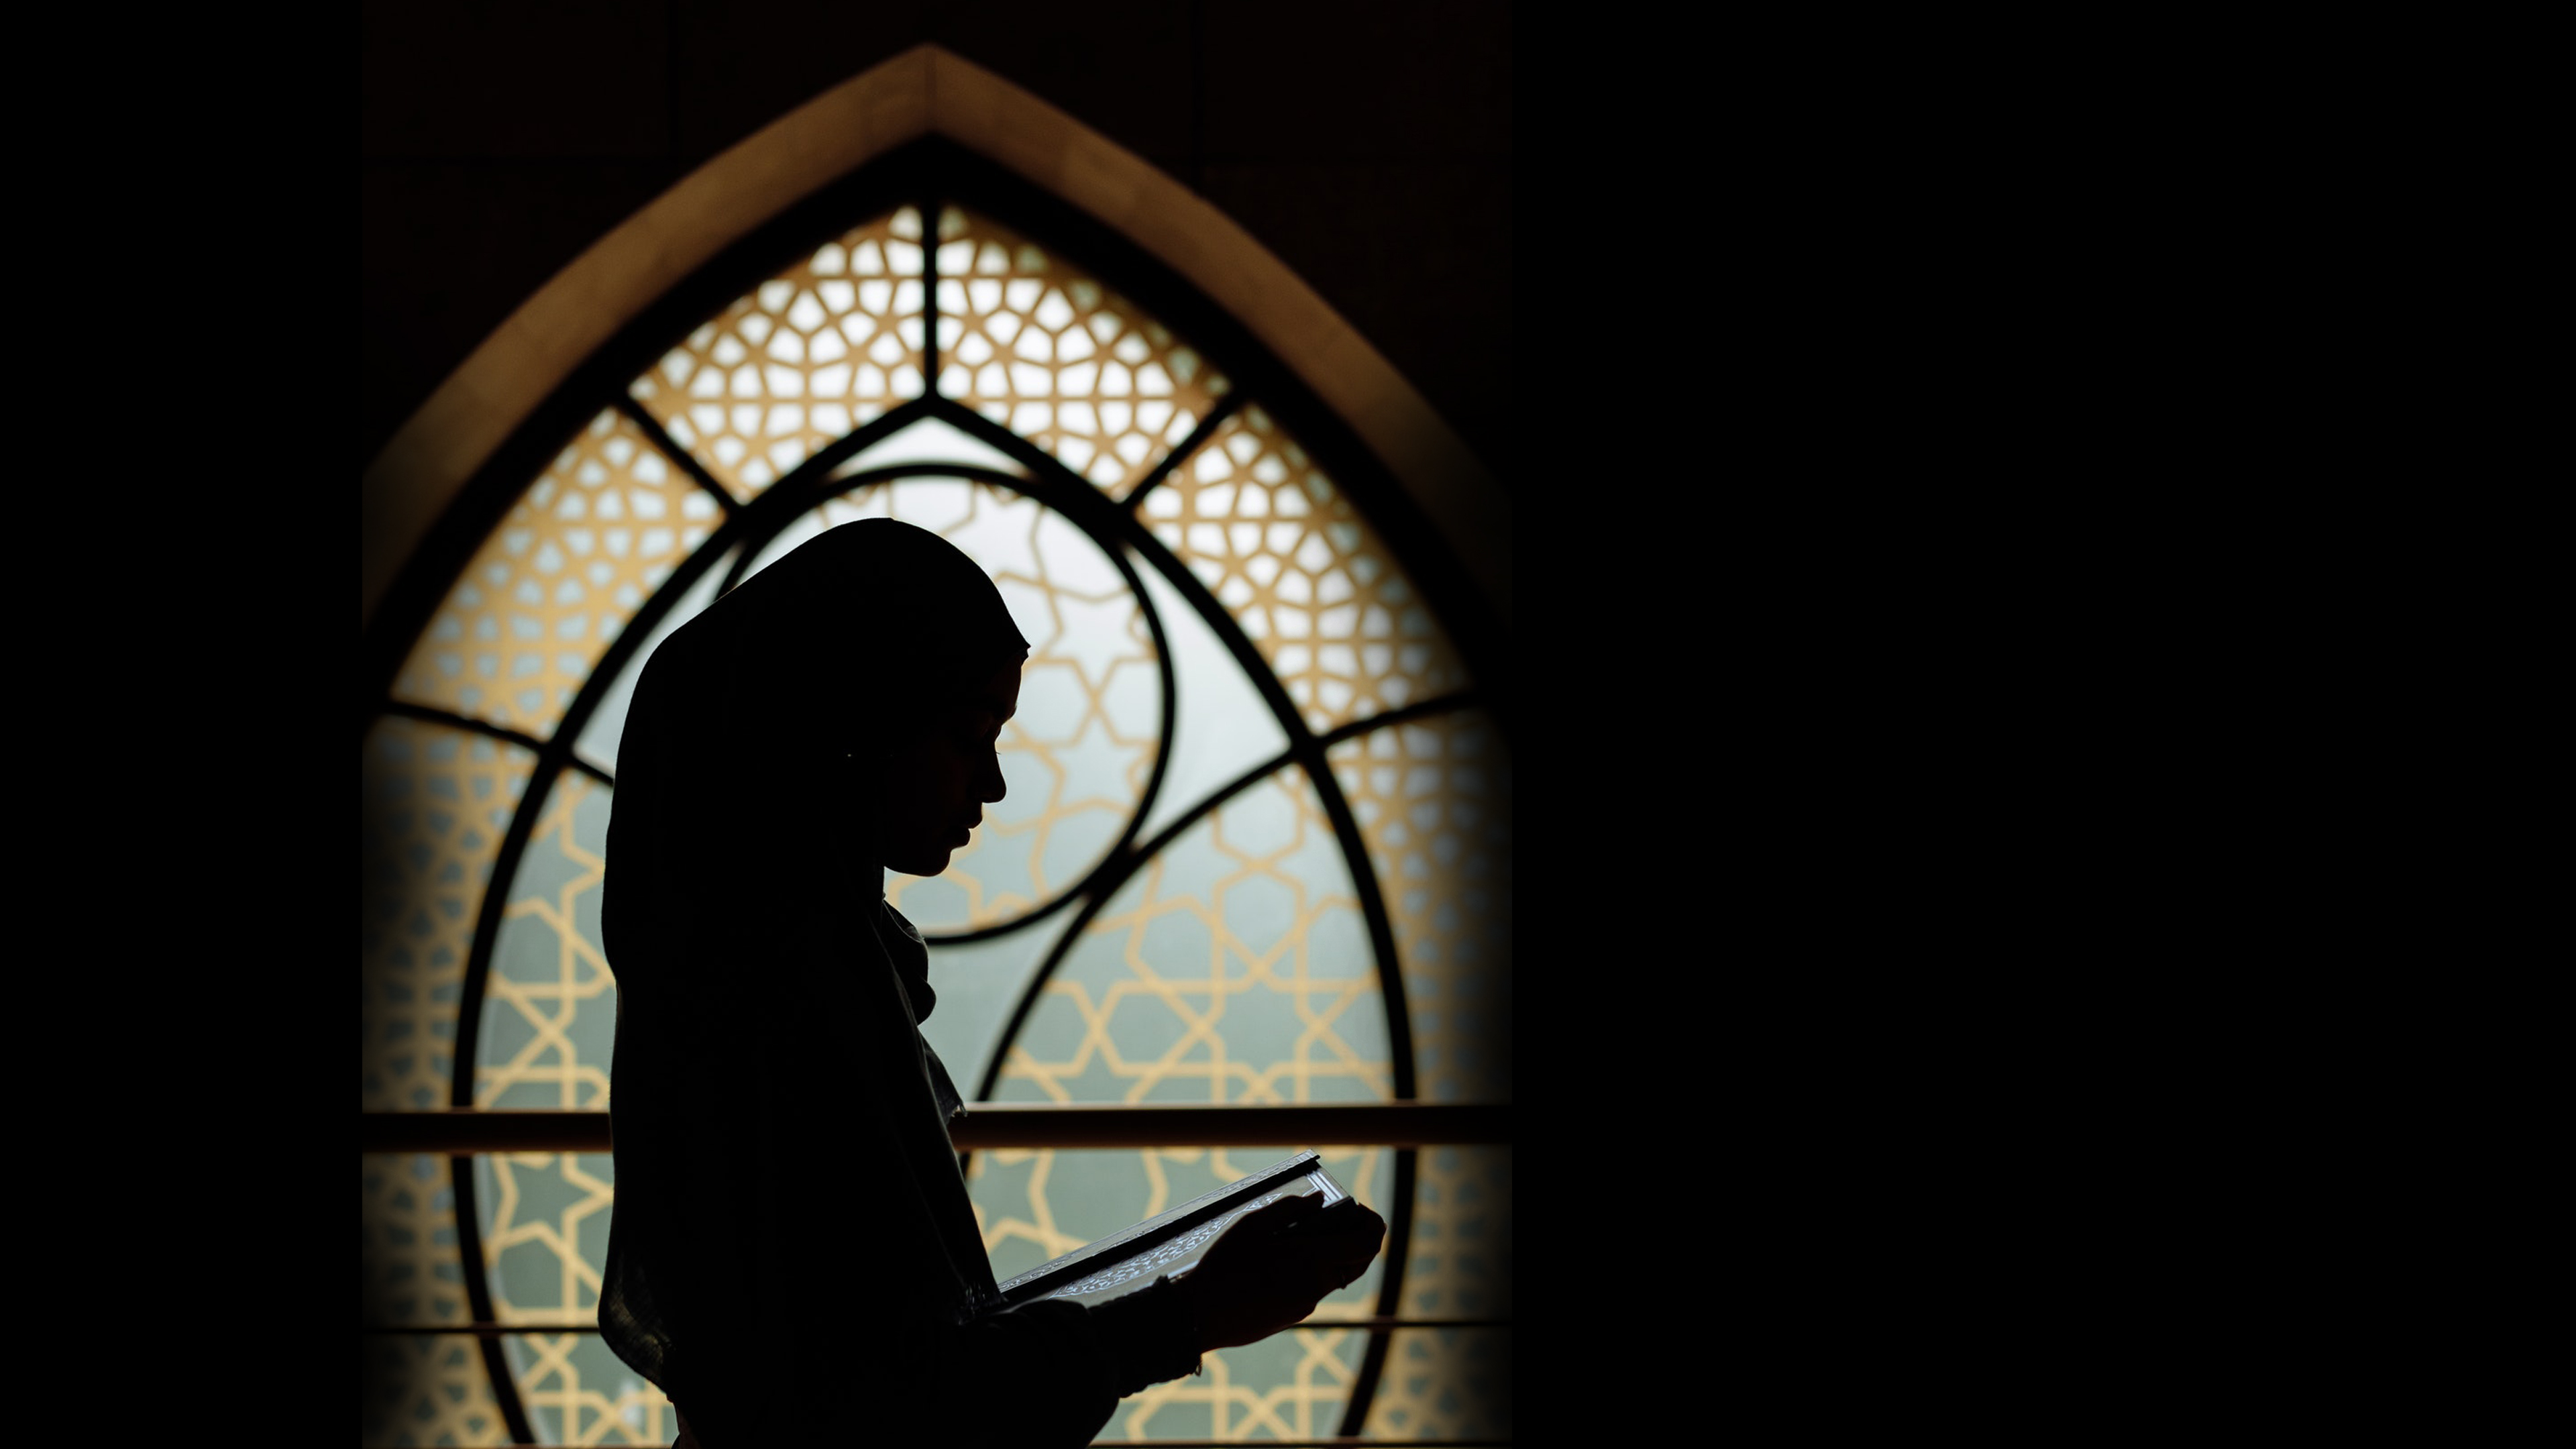 silhouette of Muslim woman reading in the masjid